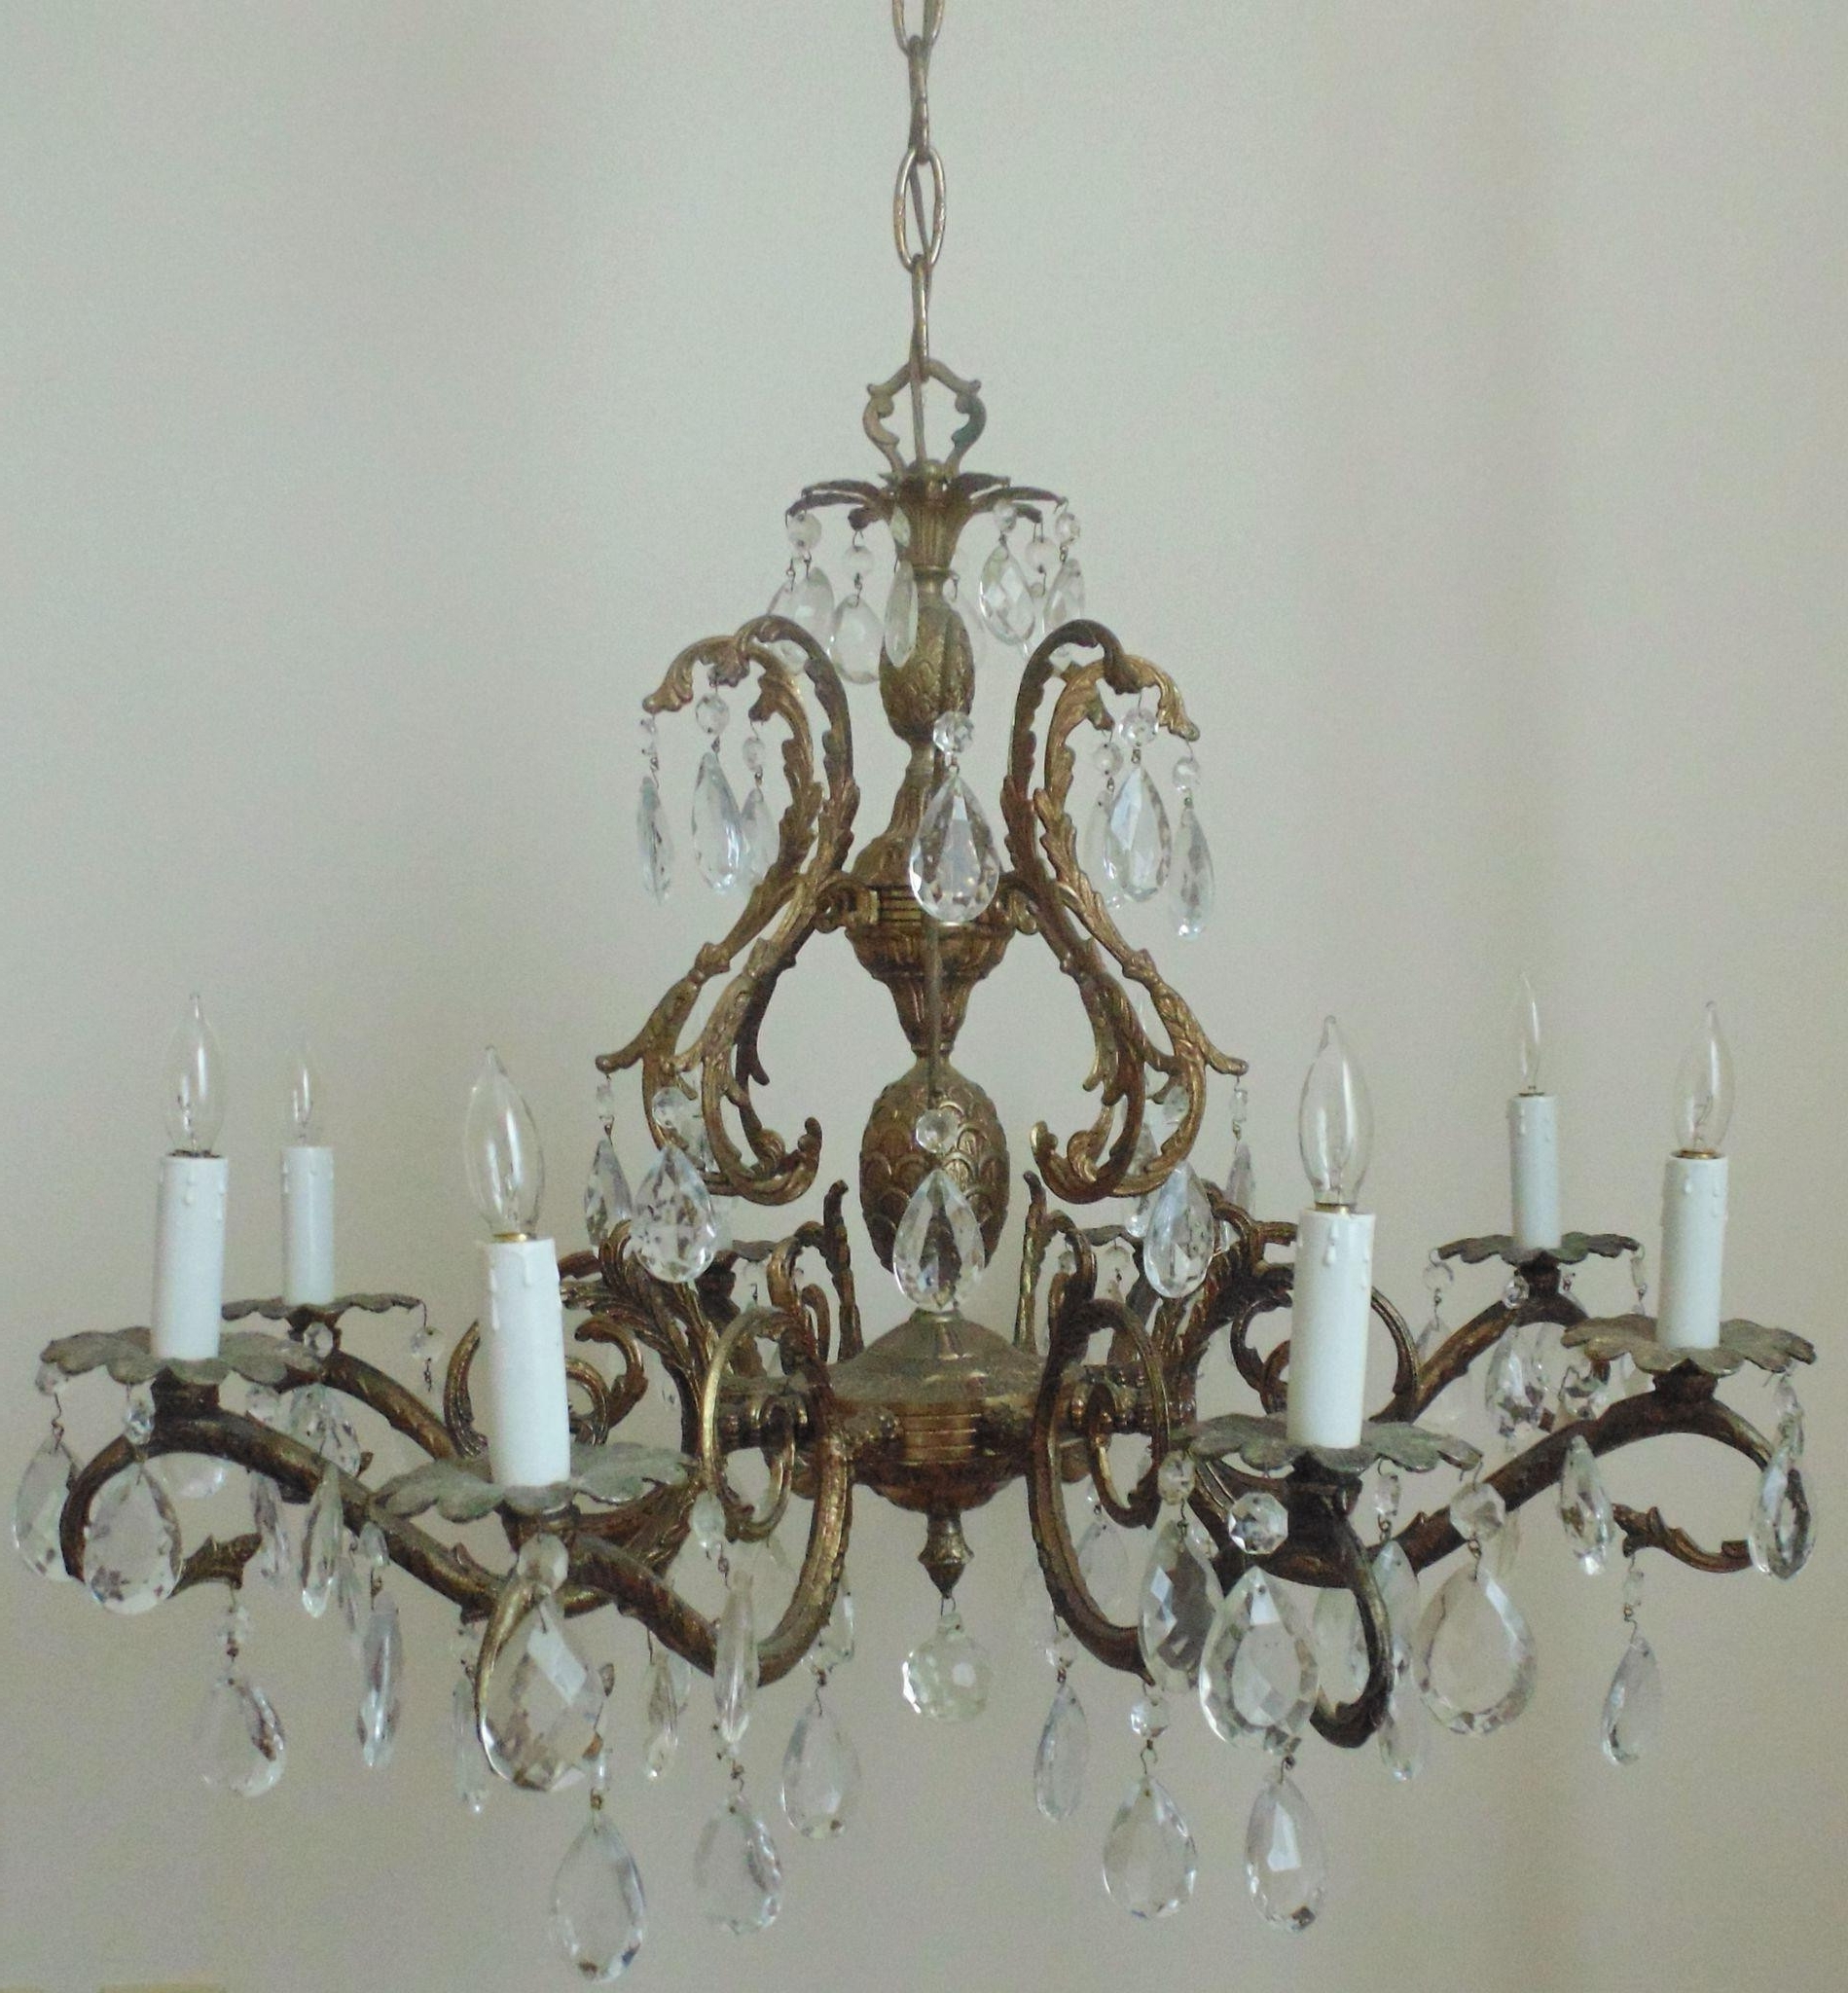 Chandeliers : Vintage Chandelier Elegant Vintage Chandelier Hire With Regard To Most Current Vintage Chandeliers (View 7 of 20)